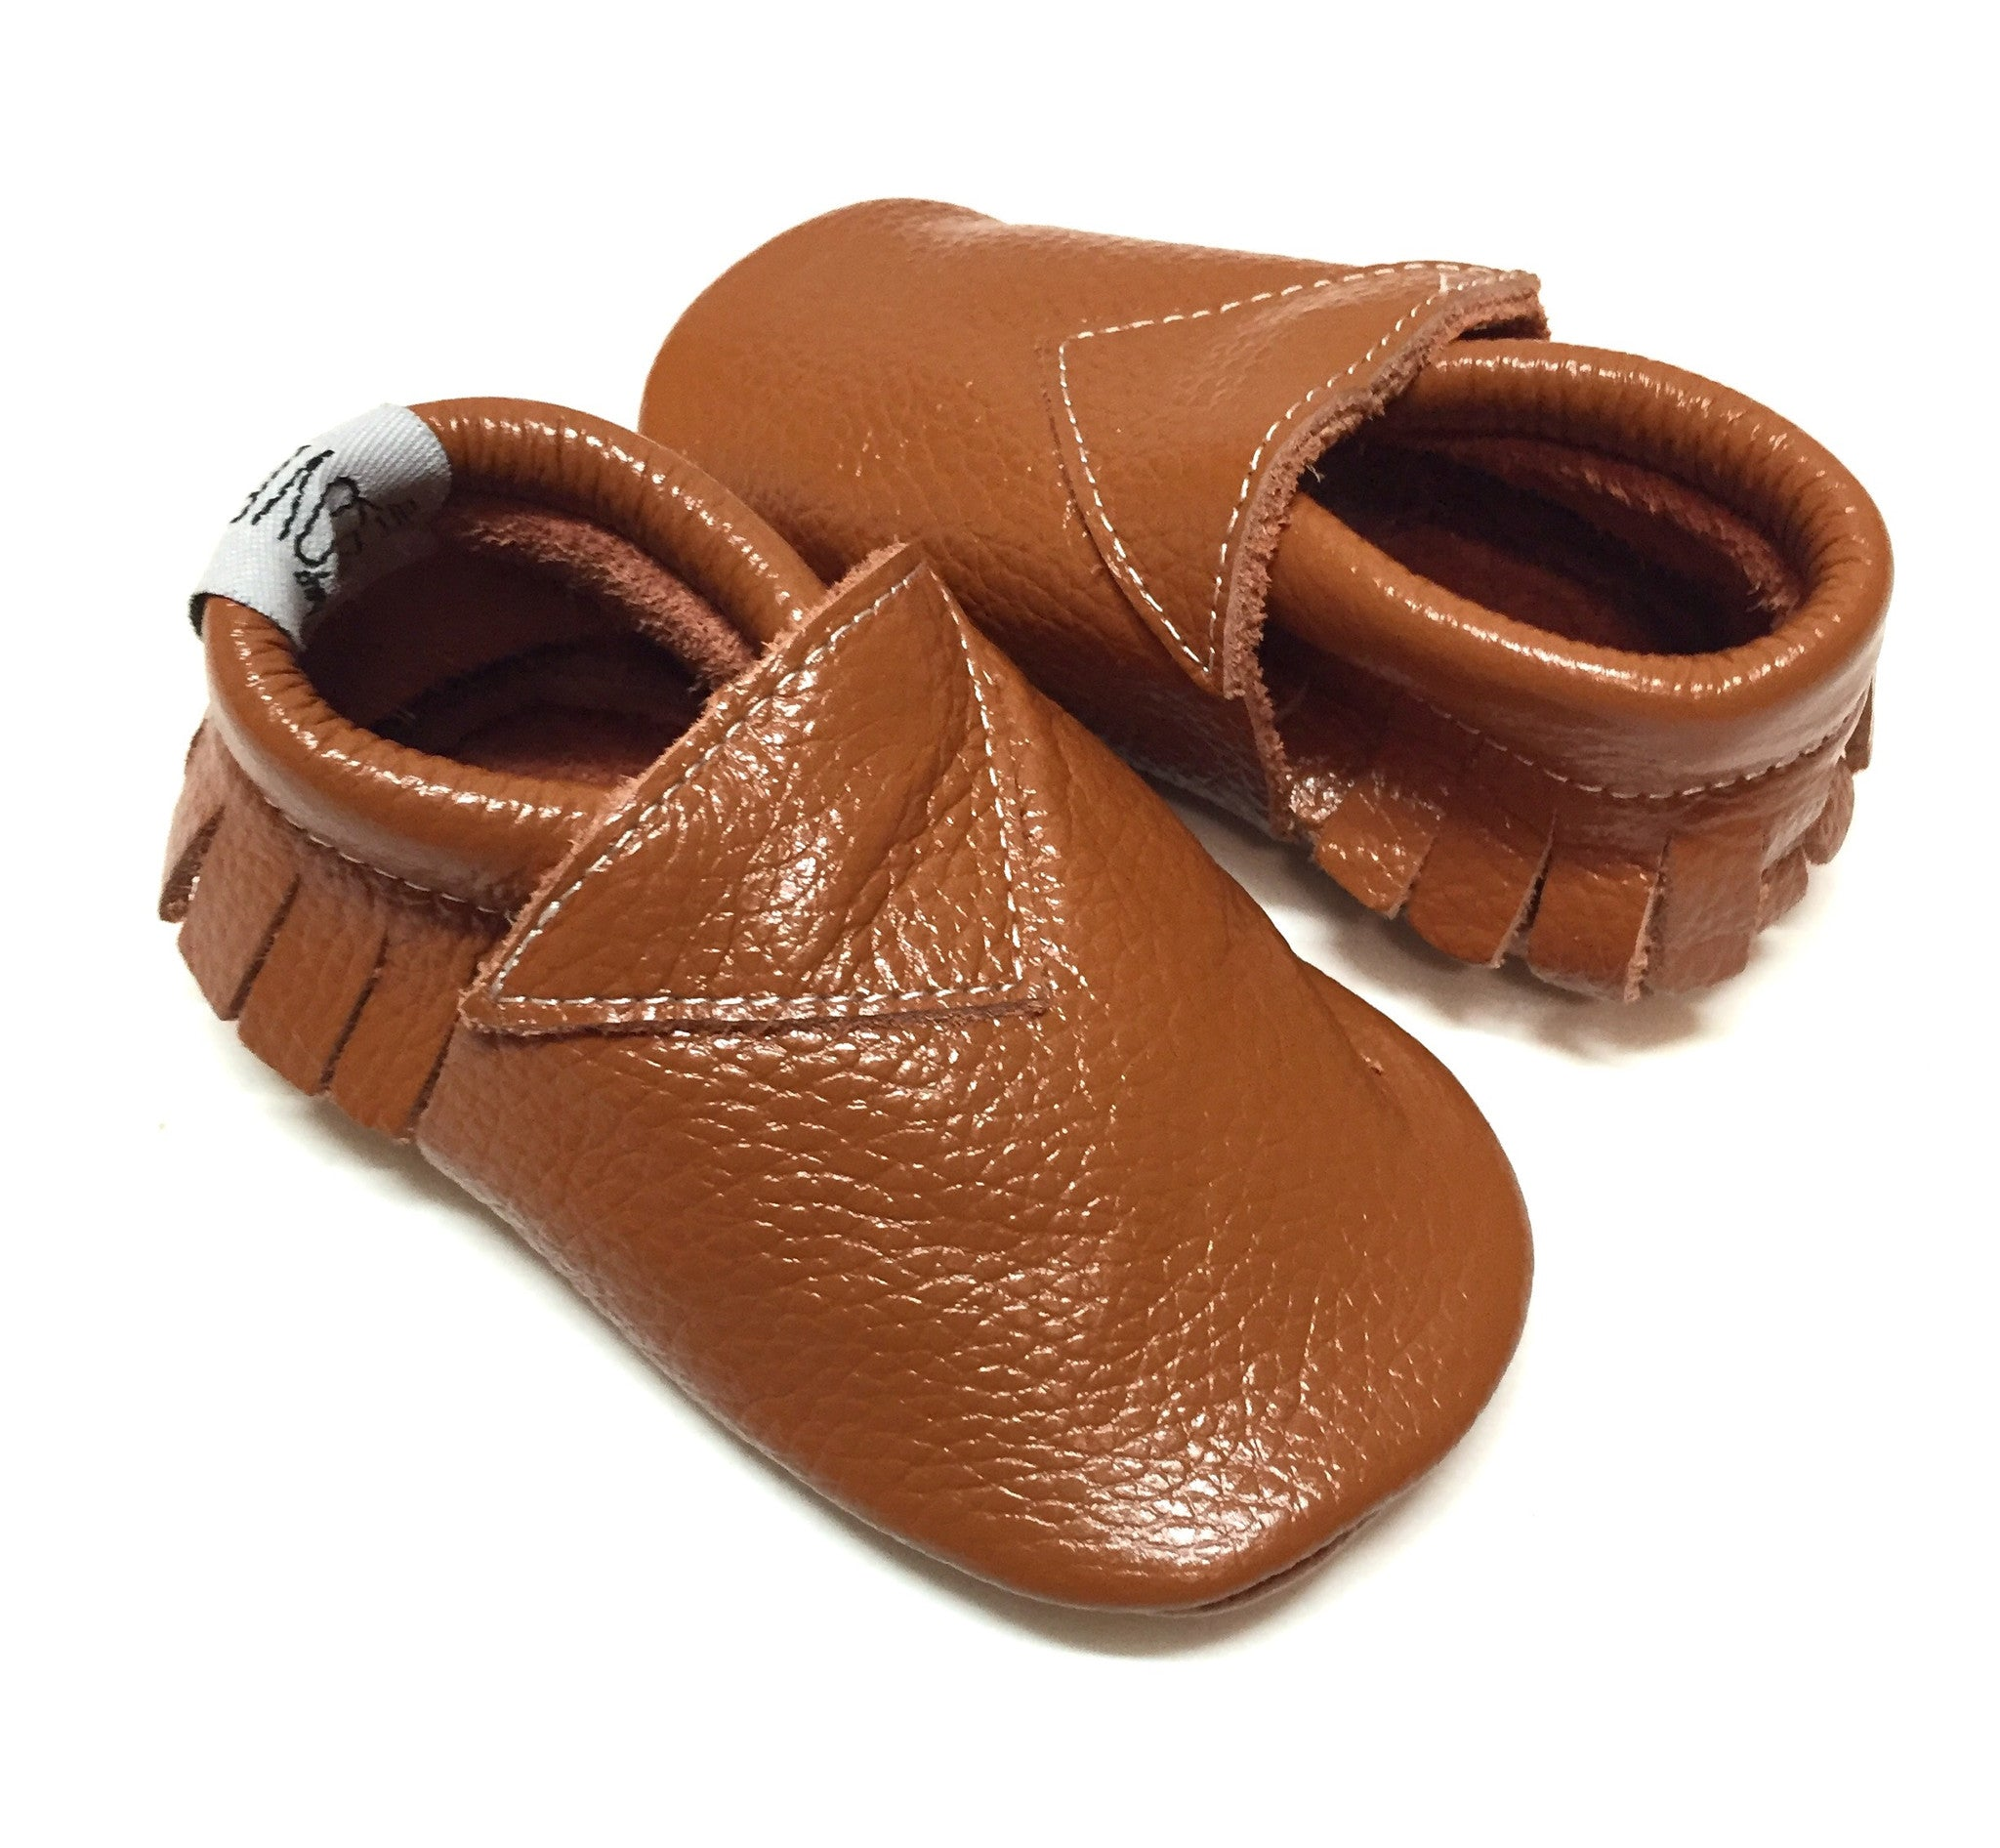 Caramel Brown Fringeless Front Leather Moccasins